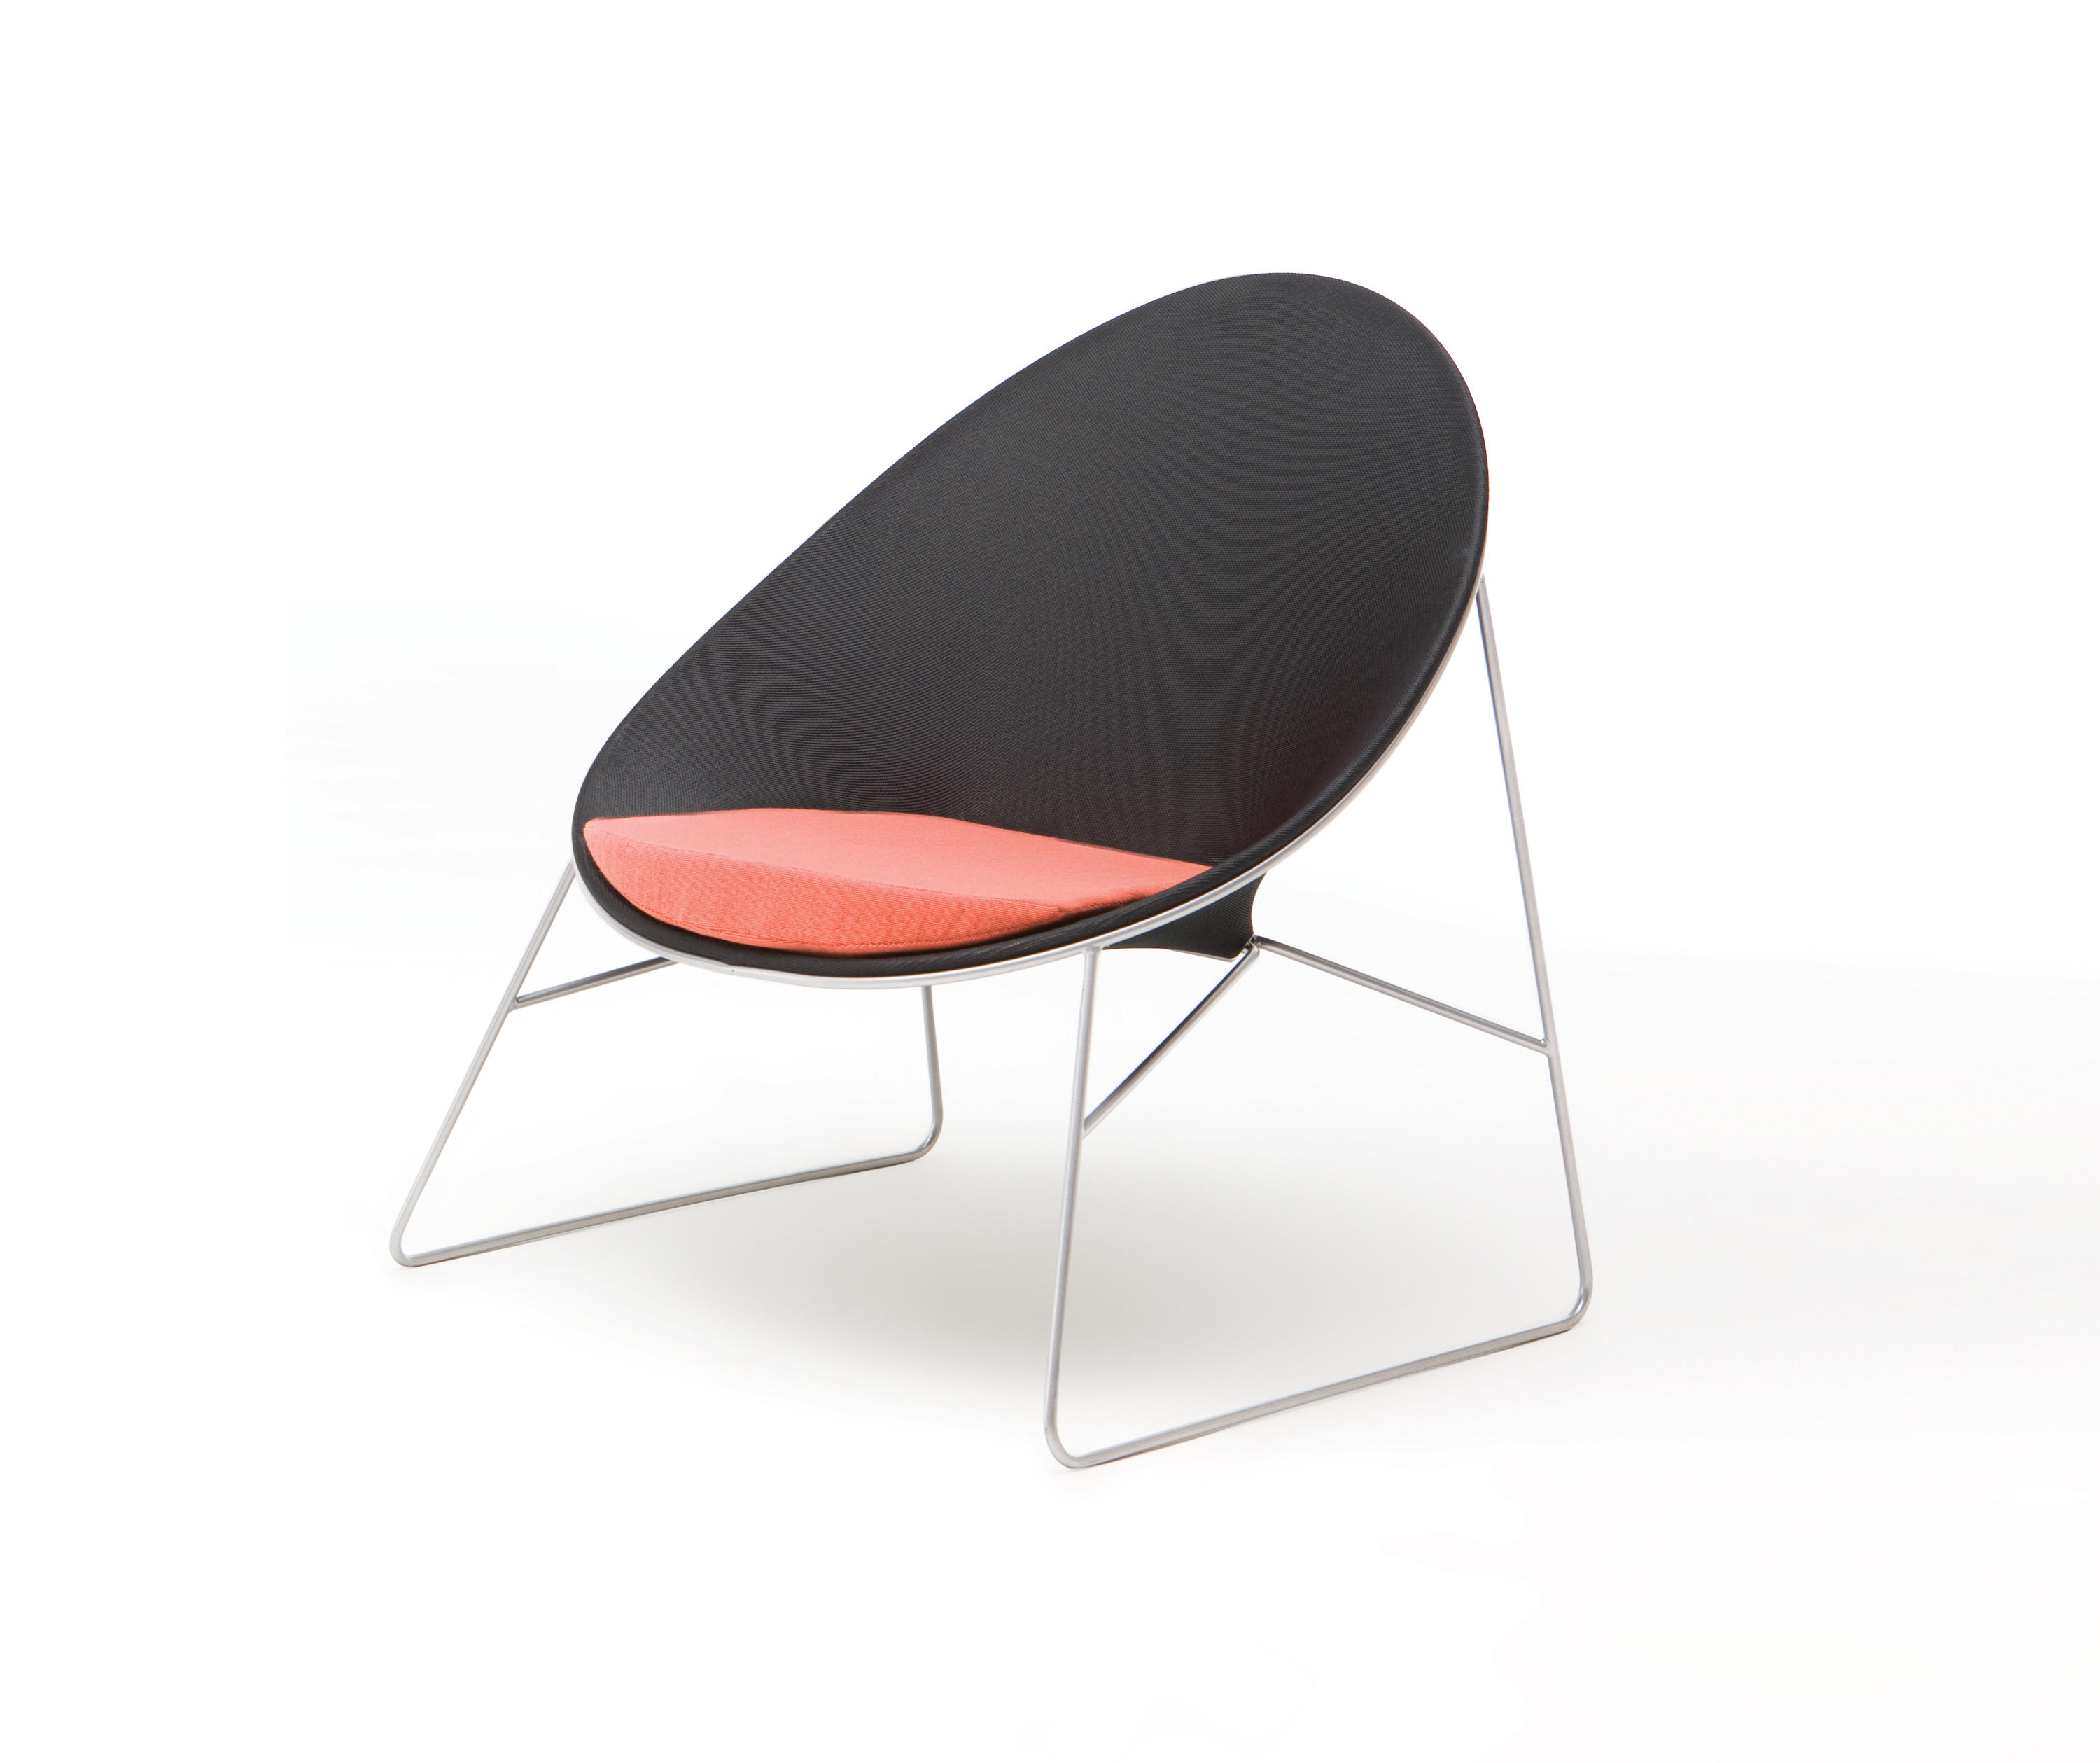 COCOON Lounge chairs from Nienkämper